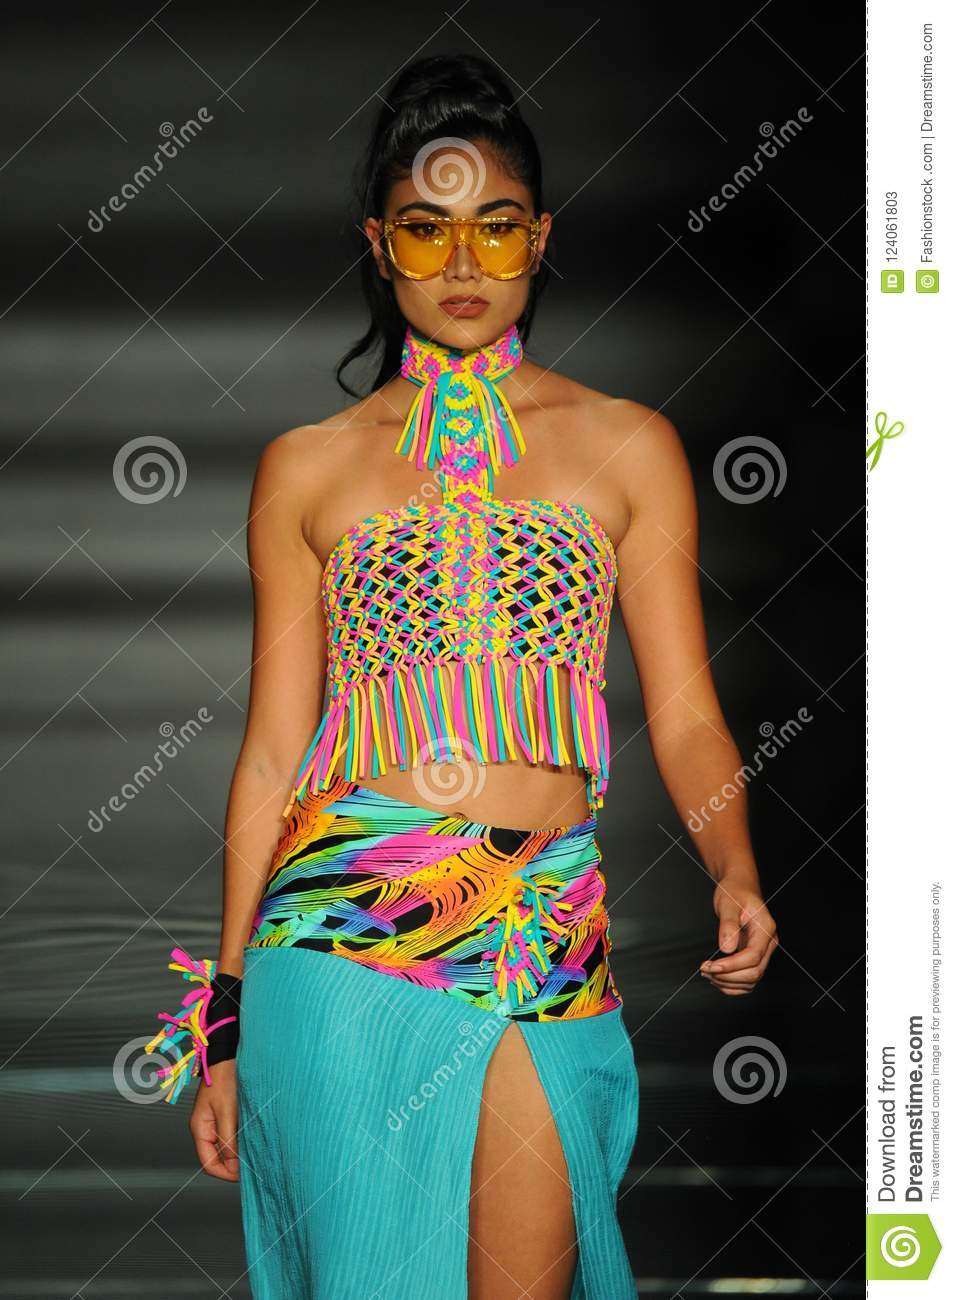 A Model Wears Fashions By Design Students Of Miami International University Of Art And Design Editorial Stock Photo Image Of July 2019 124061803